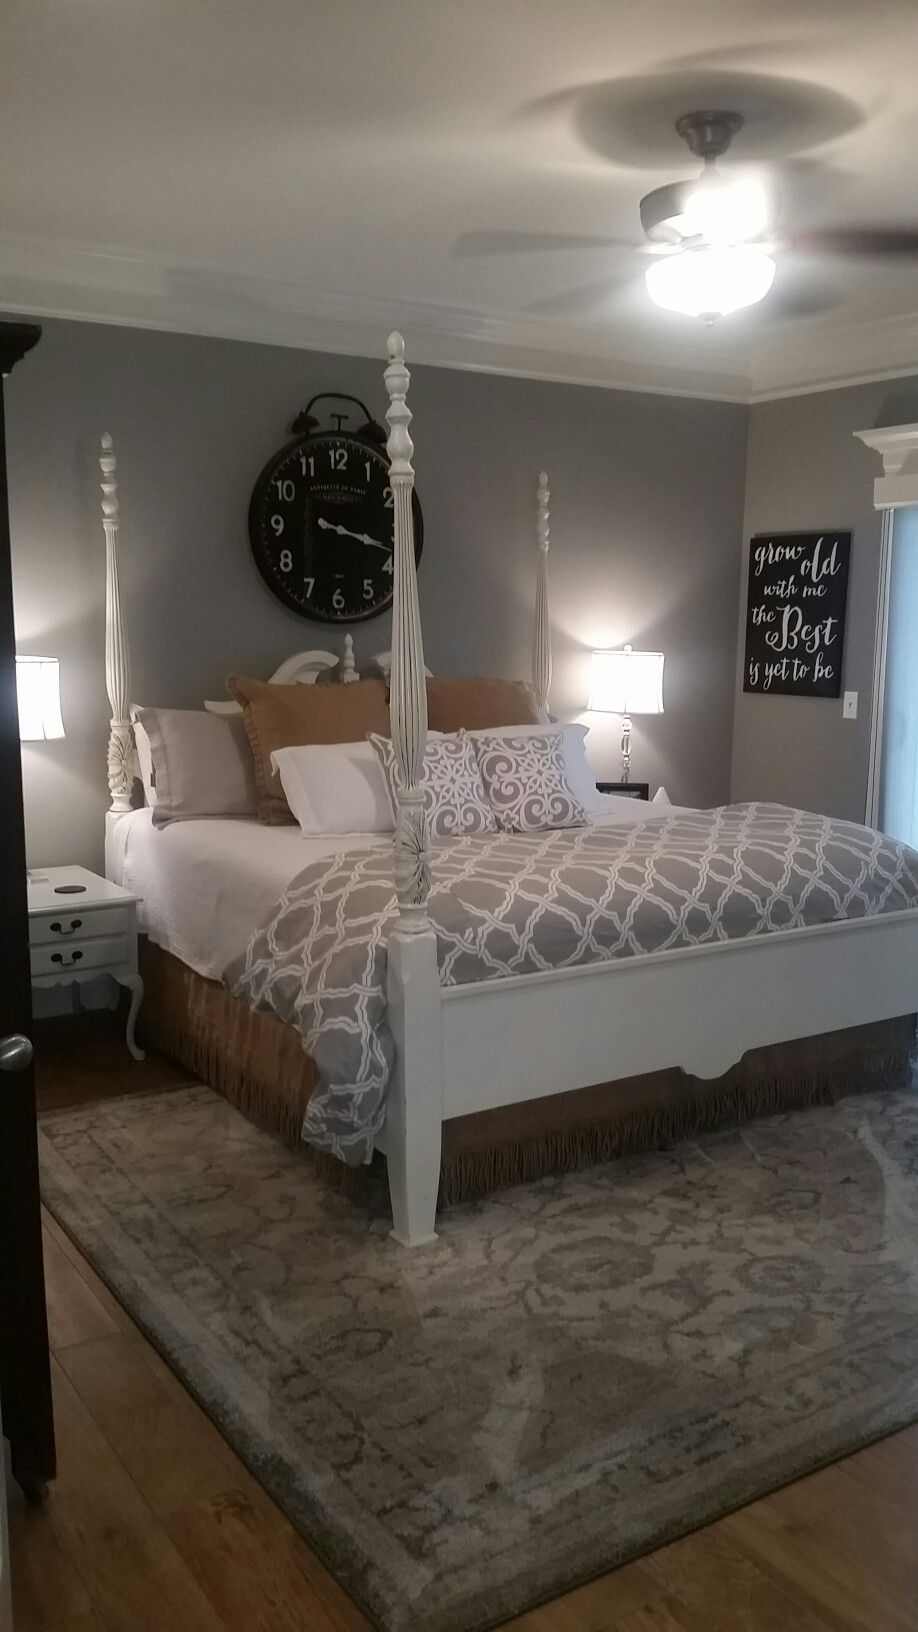 Master Bedroom At The Condo Dorian Grey Walls Ceramic Wood Tile Floors Painted Rice Bed This